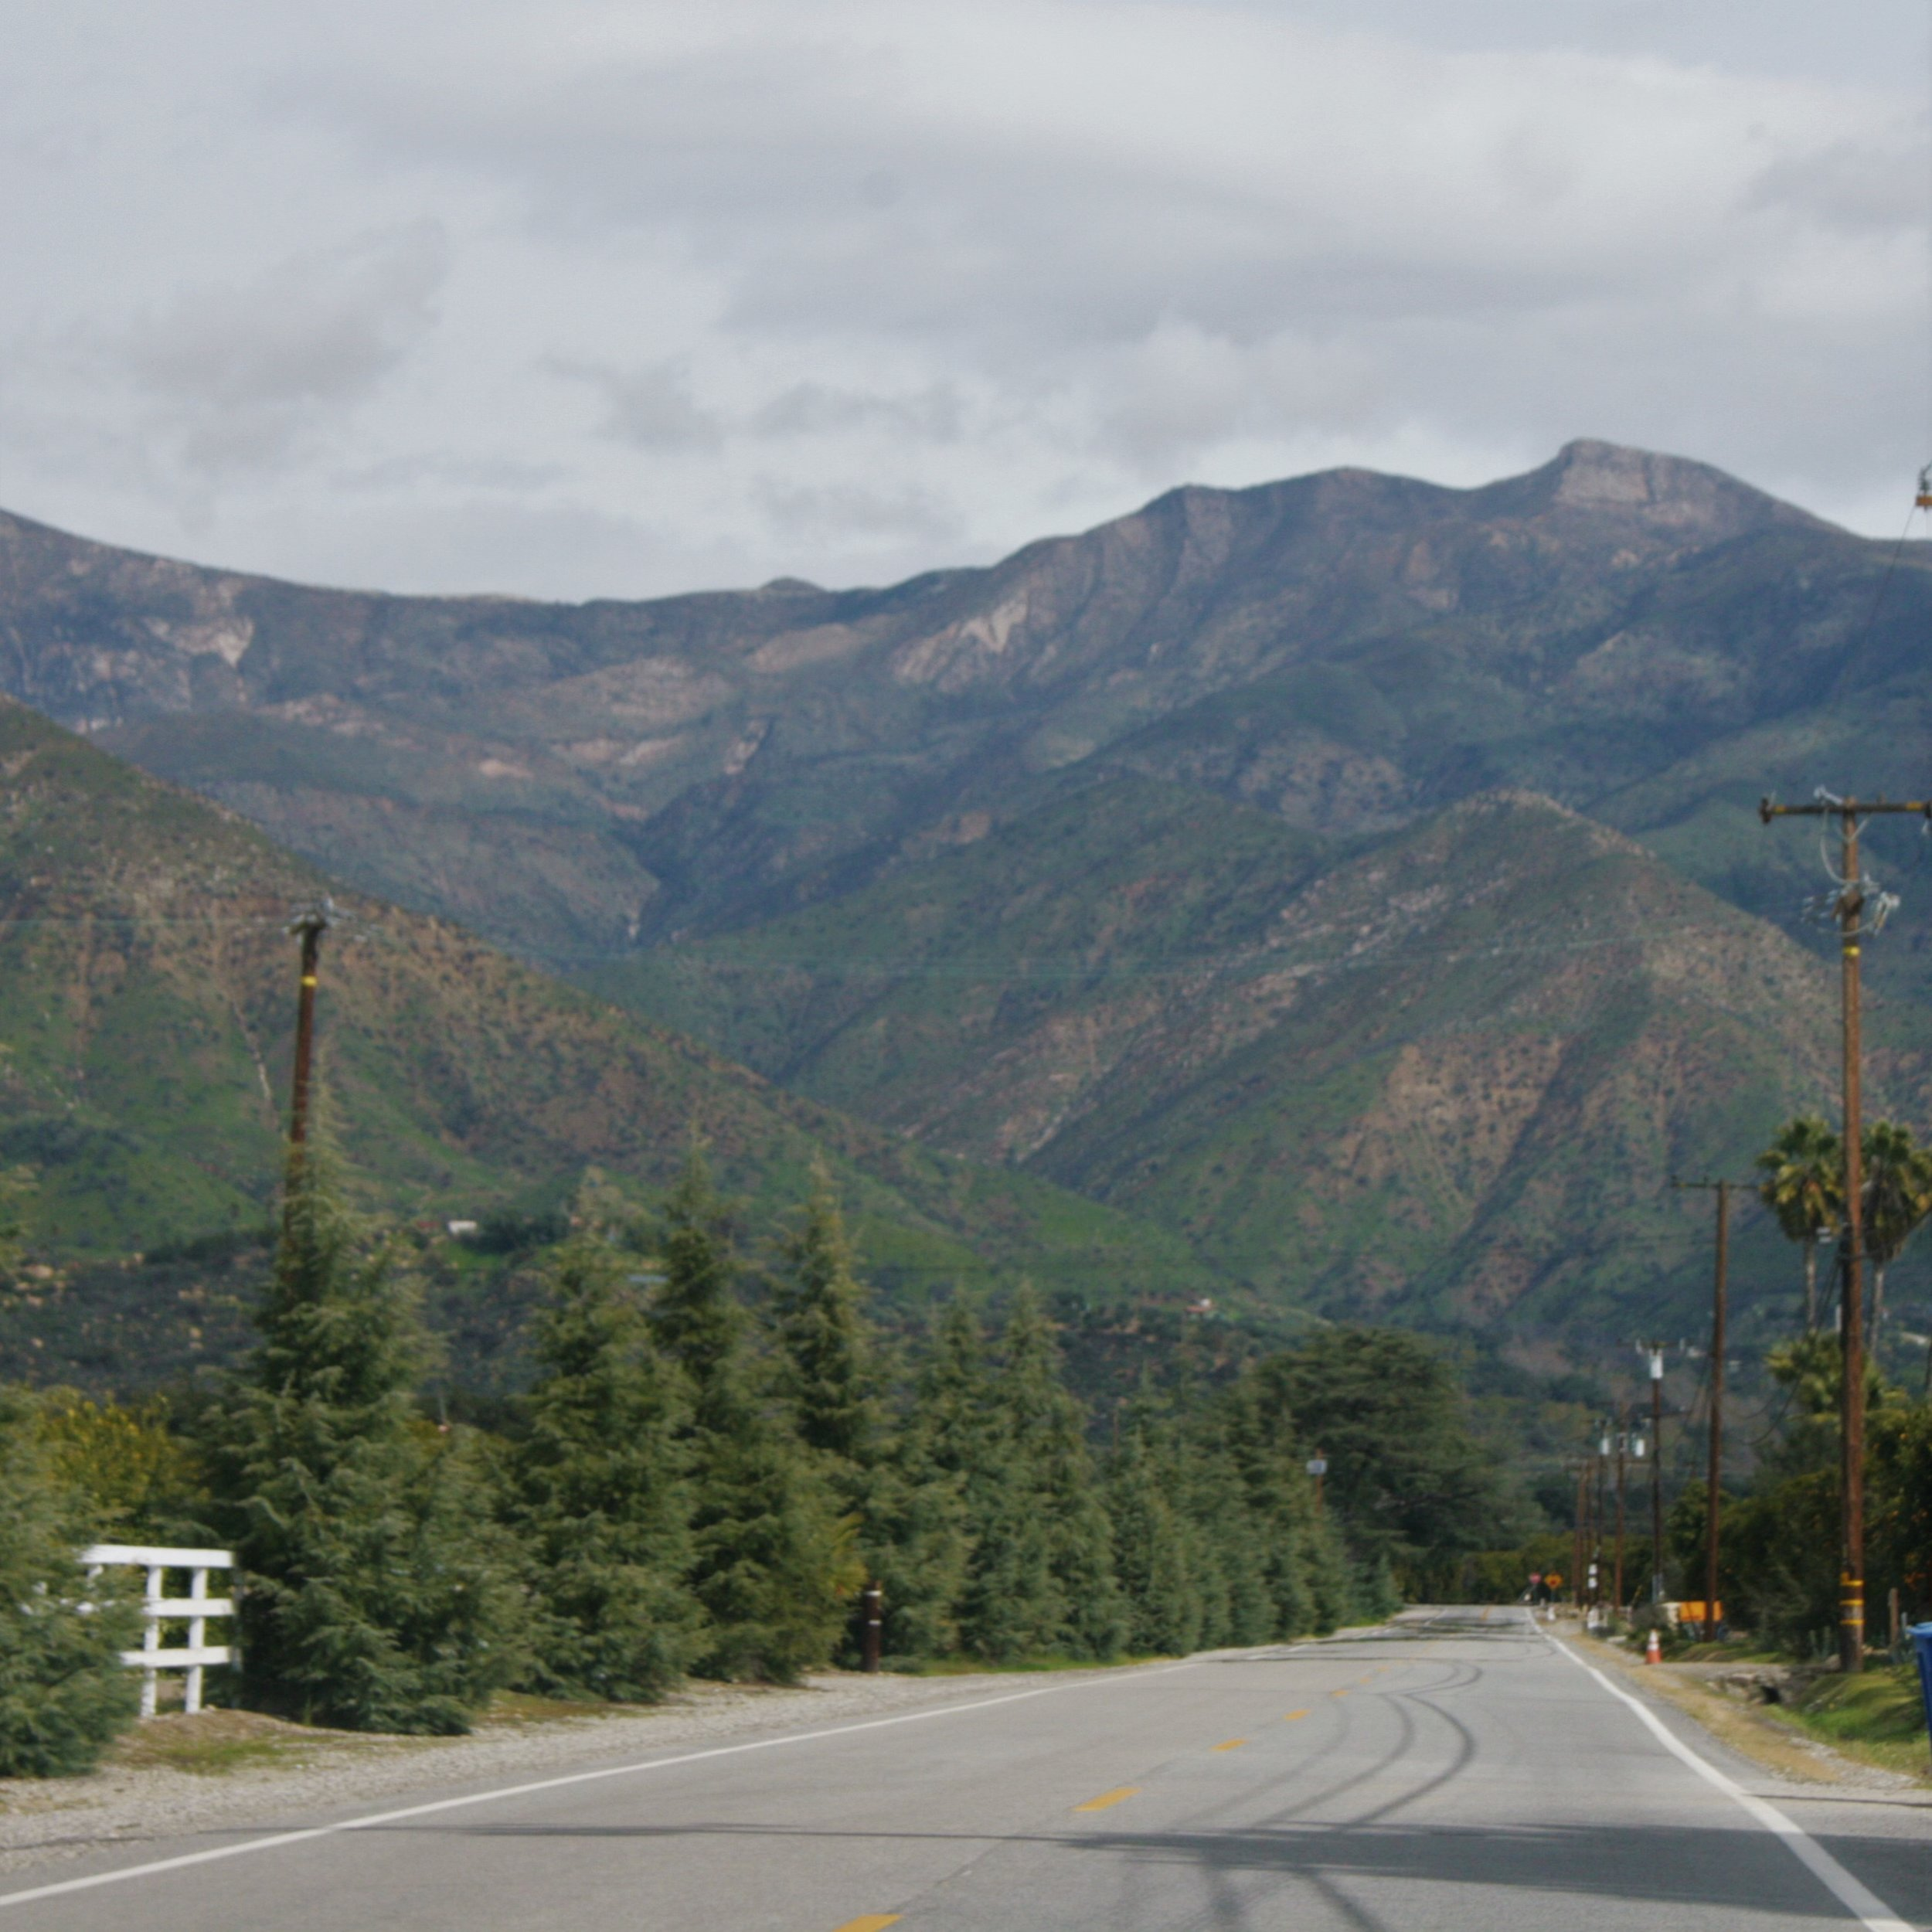 Driving through the famous citrus orchards of Ojai towards the Topa Topa Mountains.